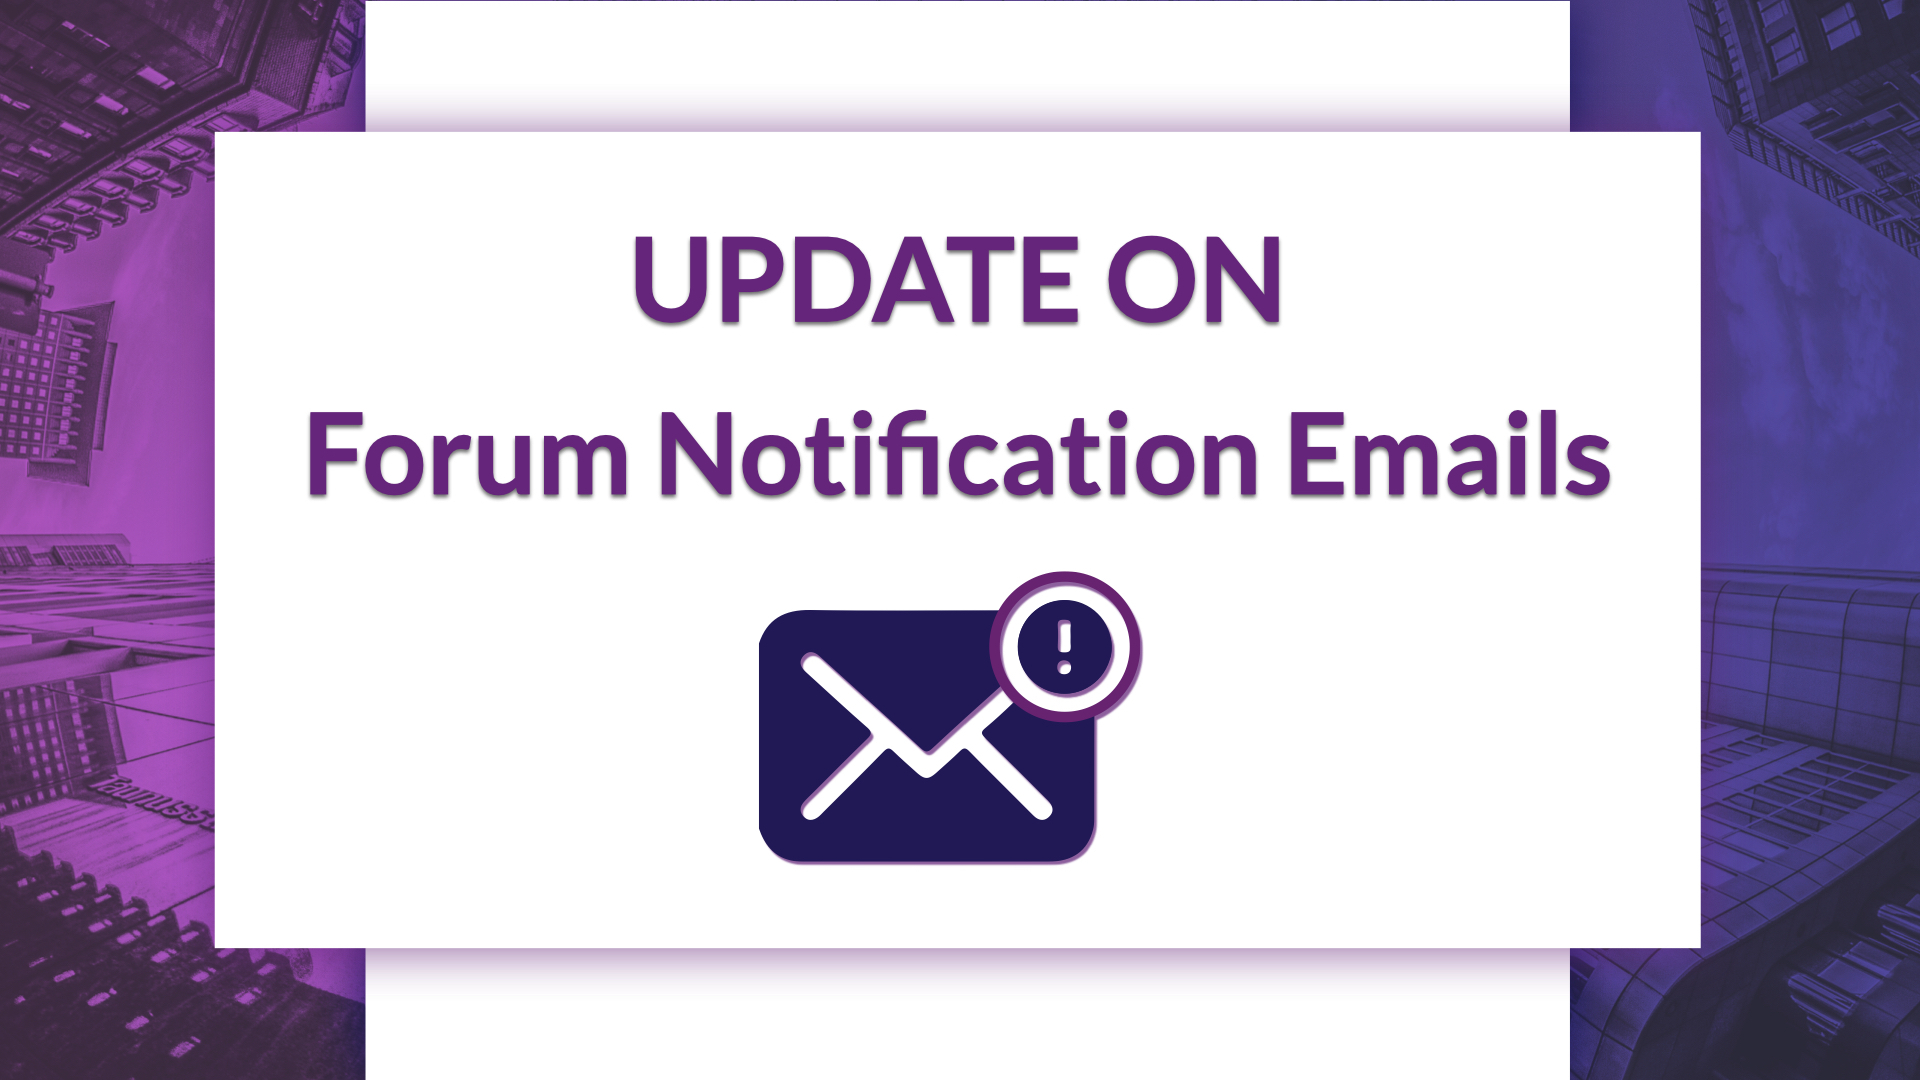 Update on Forum Notification Emails